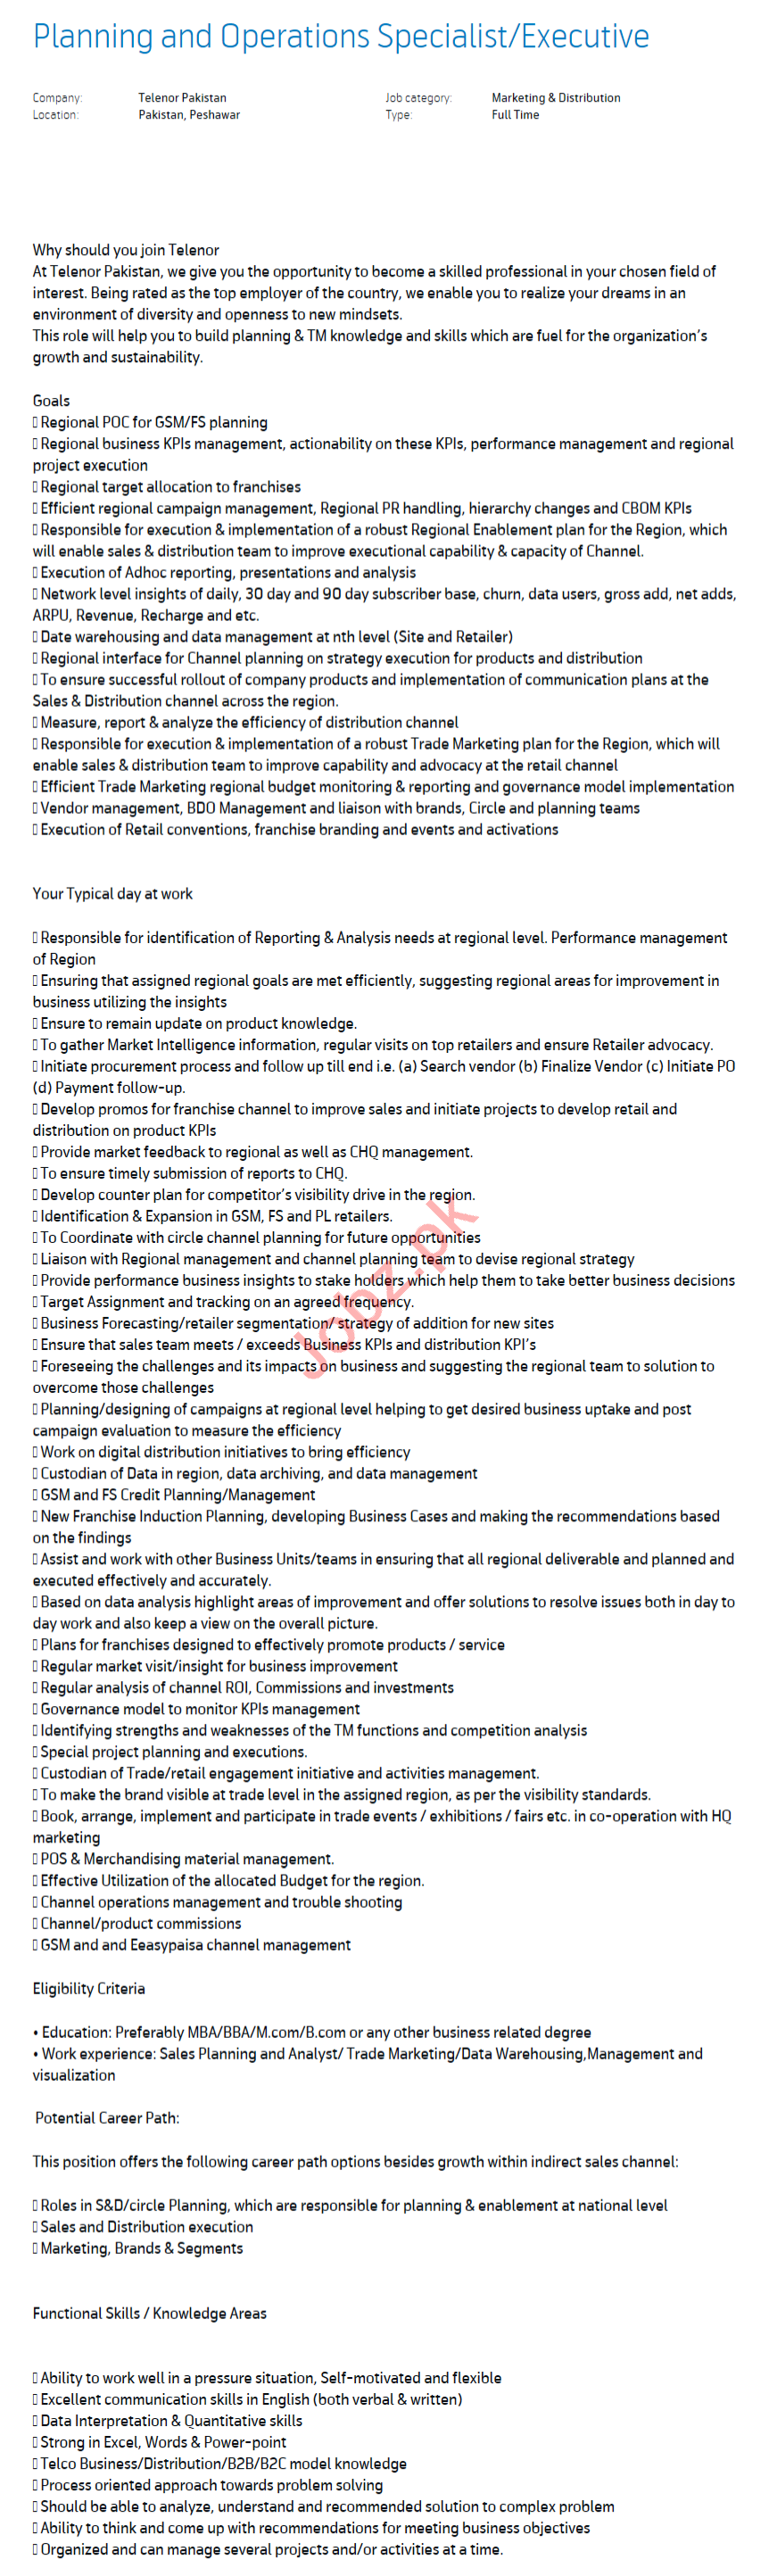 Planning & Operations Specialist Jobs 2021 in Peshawar